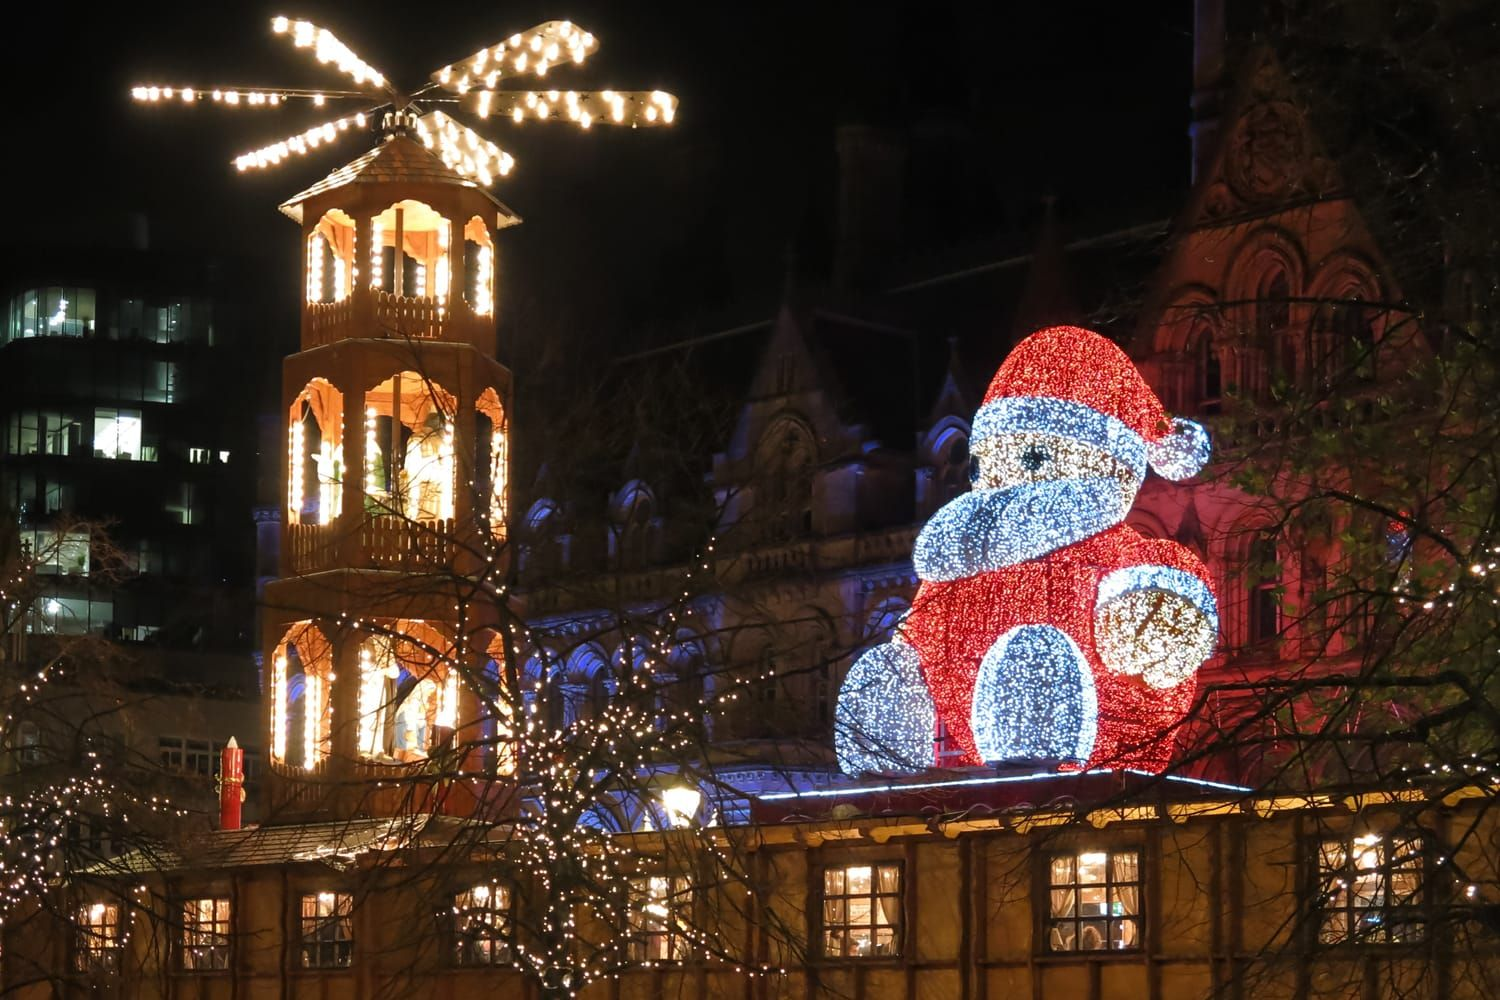 Santa Claus On Christmas Market And Town Hall On Albert Square In Manchester At Night Christmas Markets Europe Best Christmas Markets Christmas Market